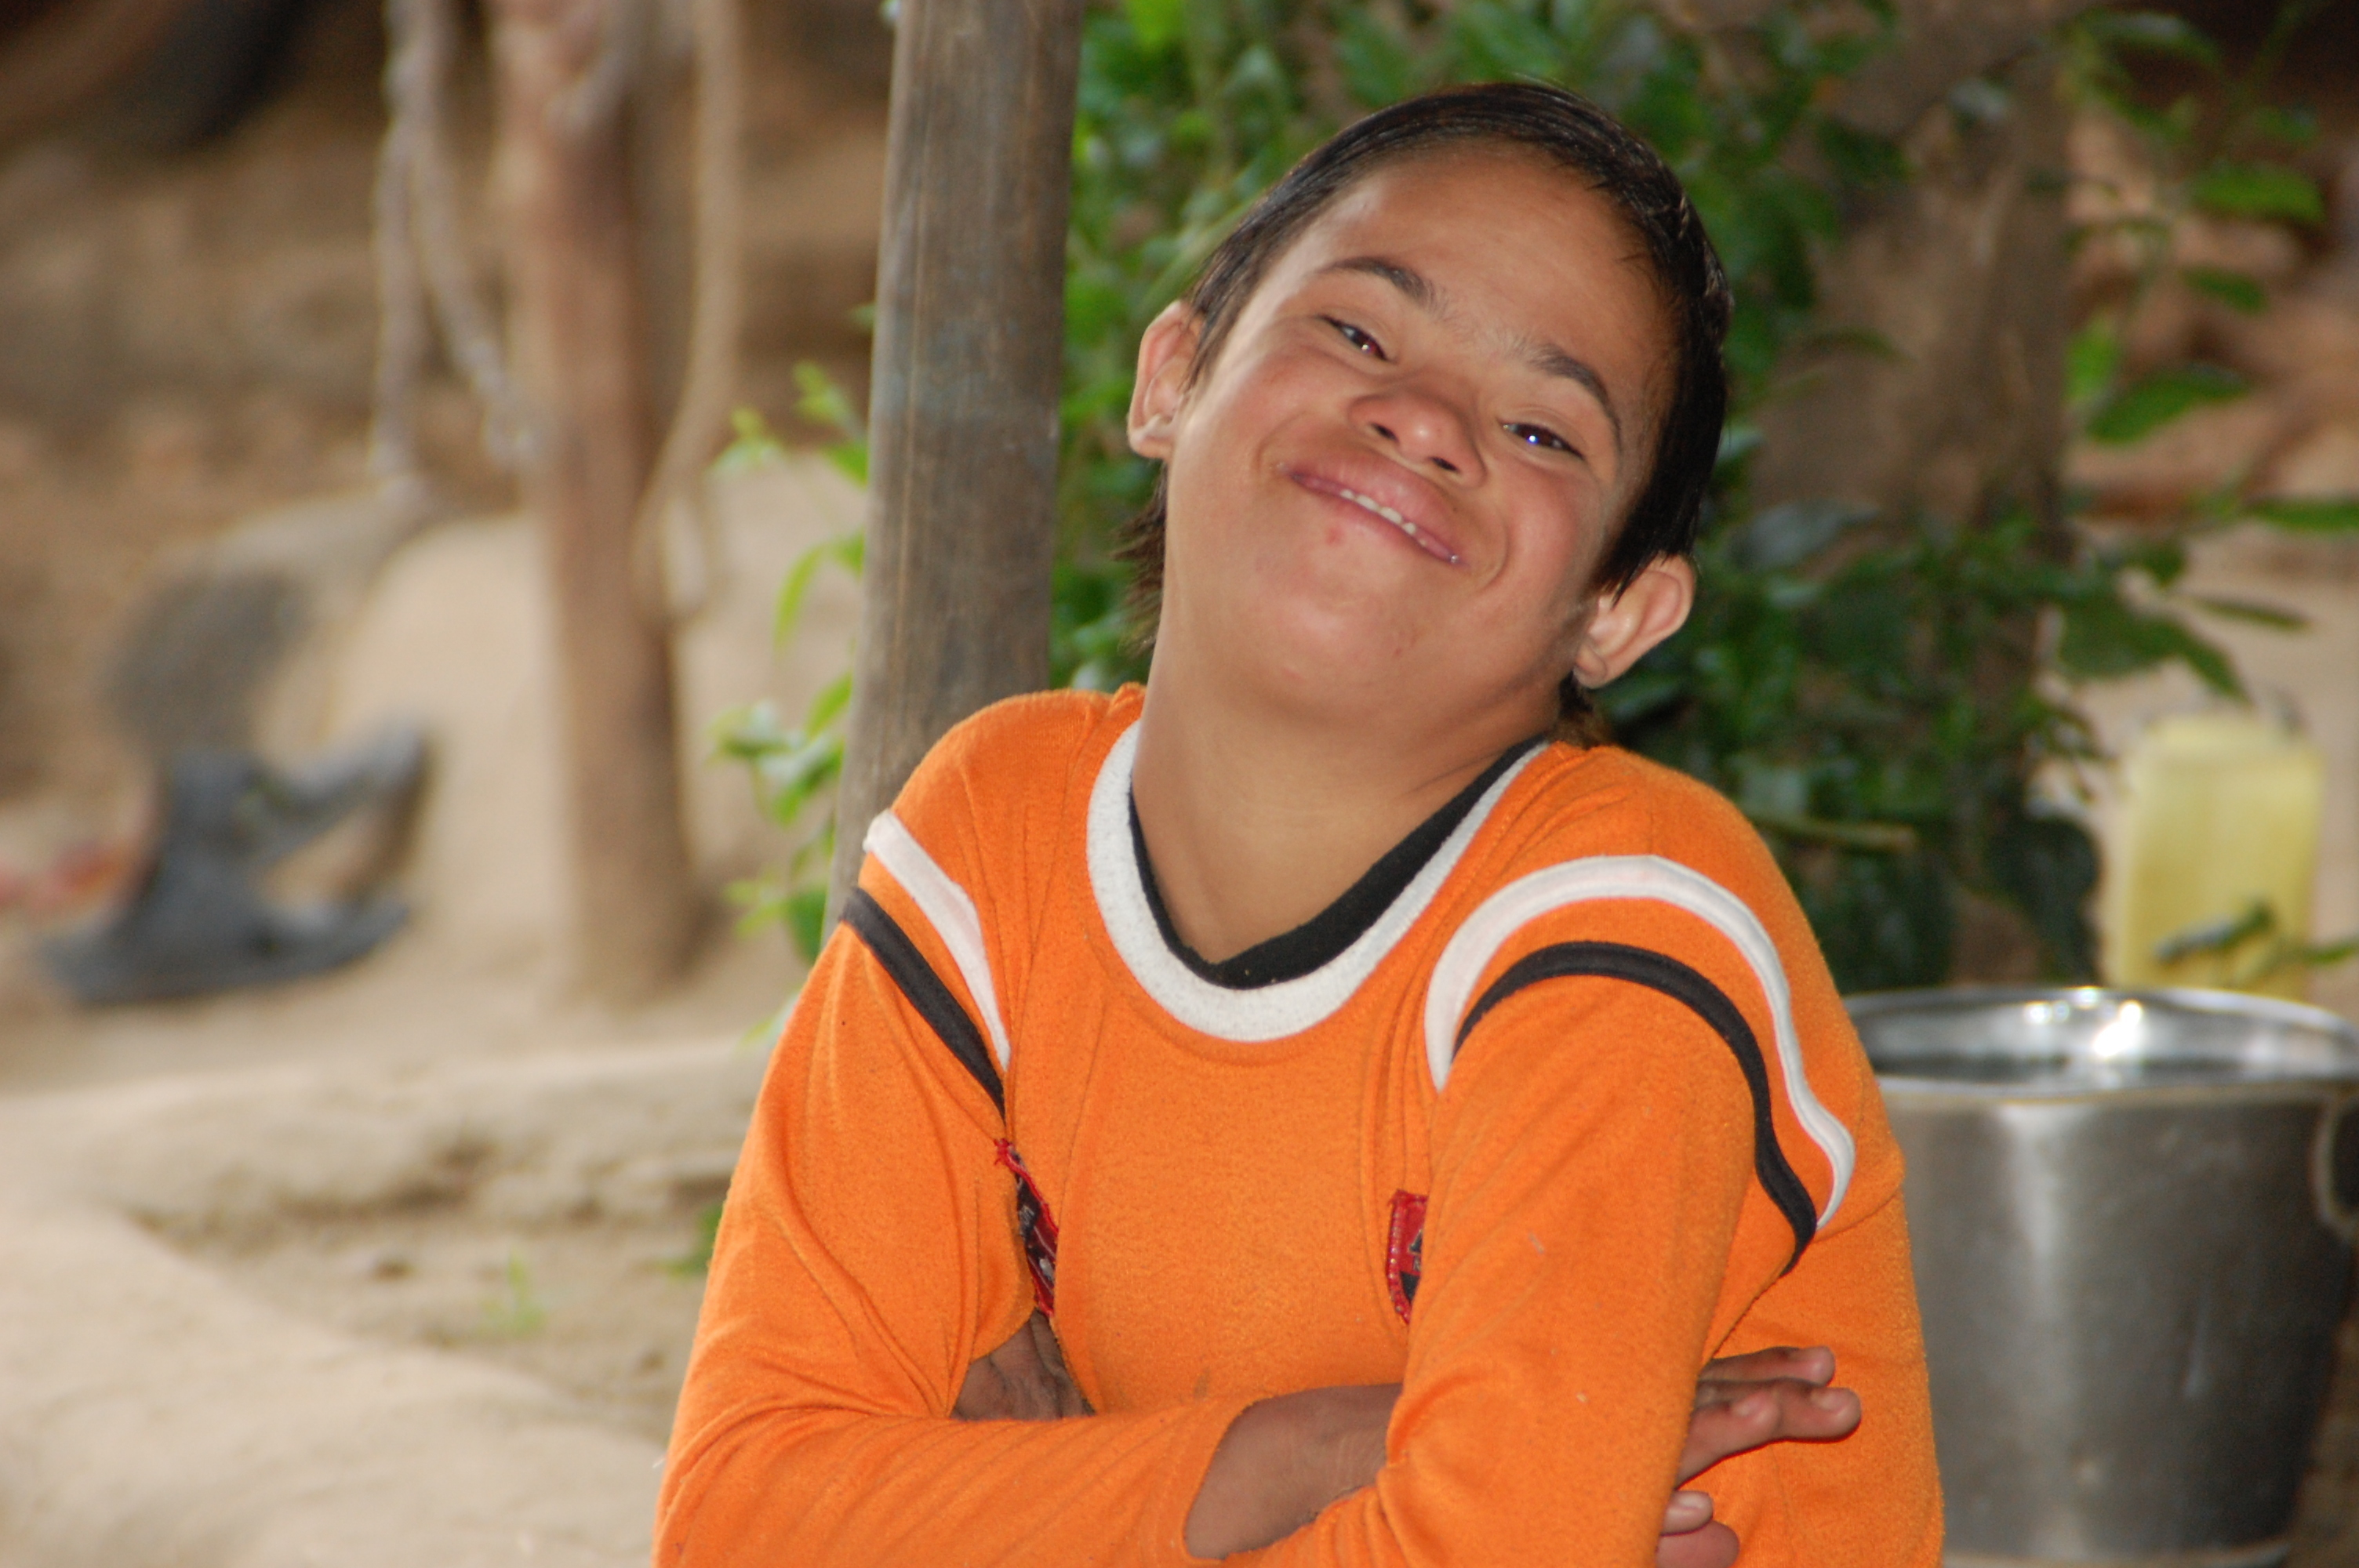 A boy with Down syndrome has his arms crossed and is smiling at the camera.